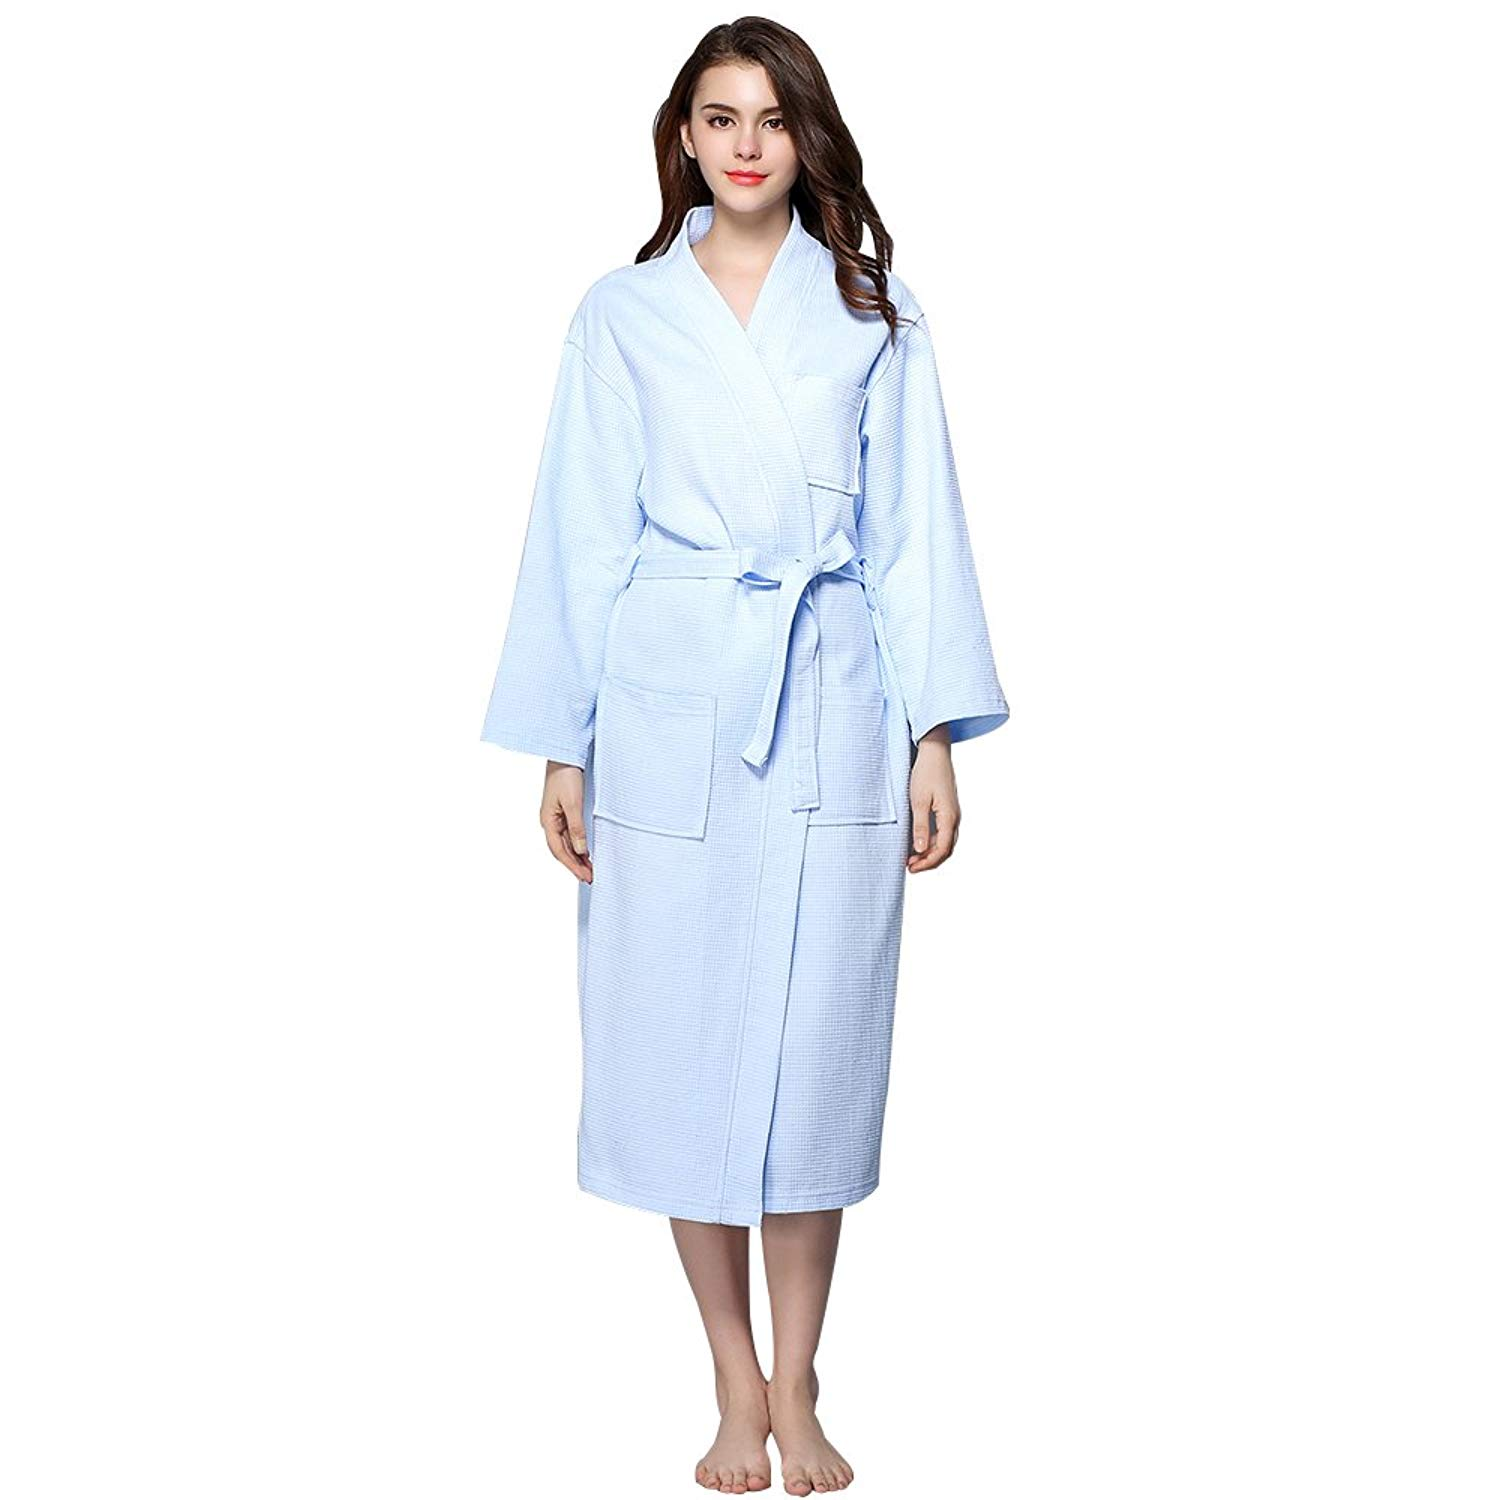 4519be61ac Get Quotations · BabYoung Women s Waffle Bathrobes Casual Cotton Long  Sleeves Plus Size Robes